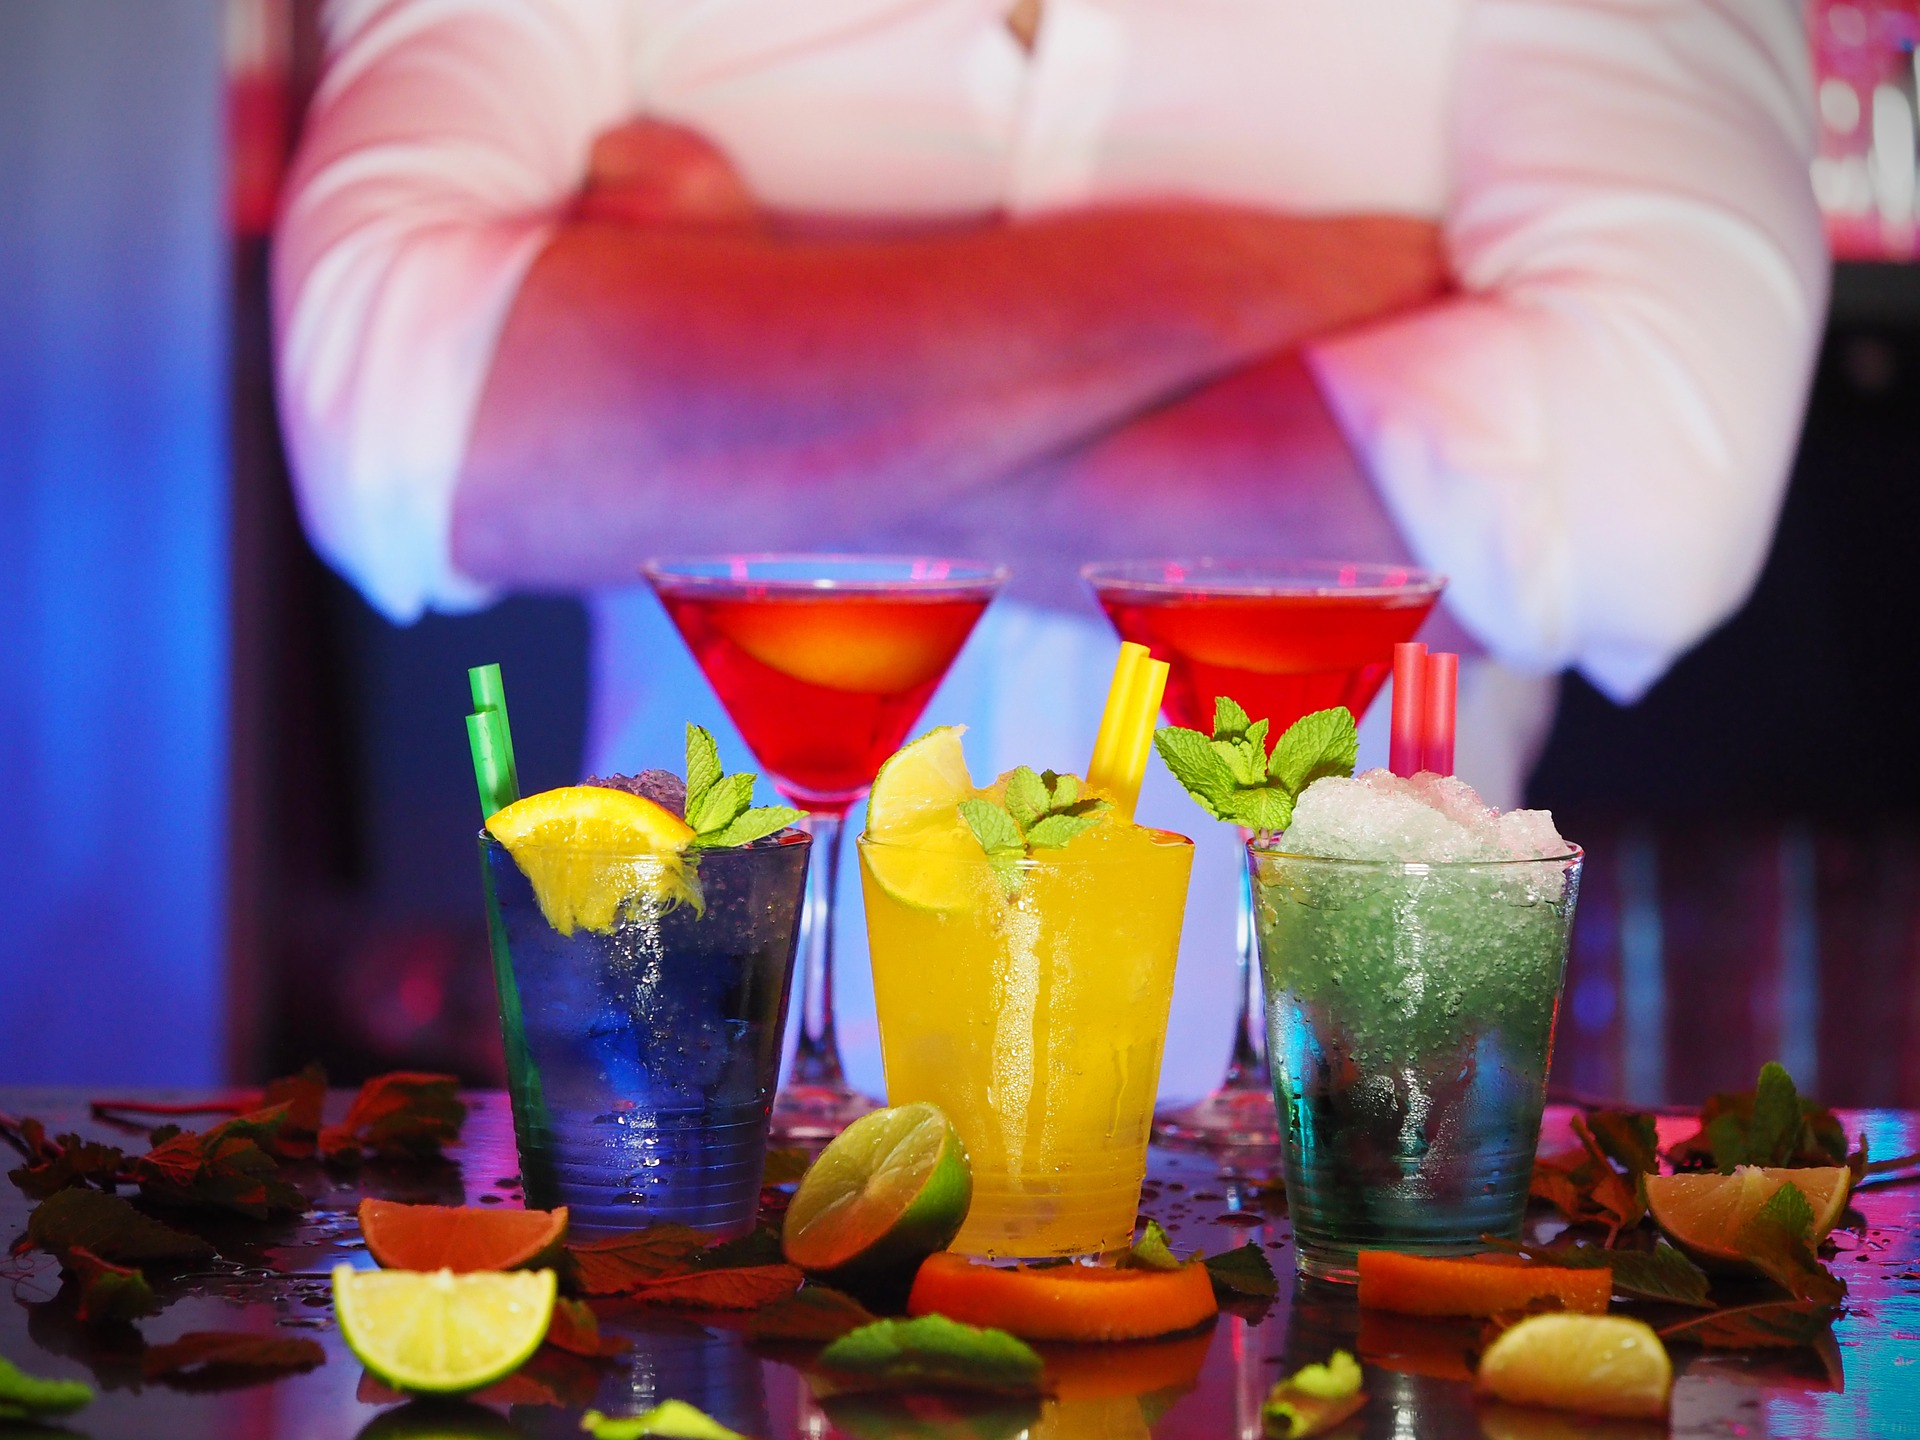 Barman_photo_pixabay_free